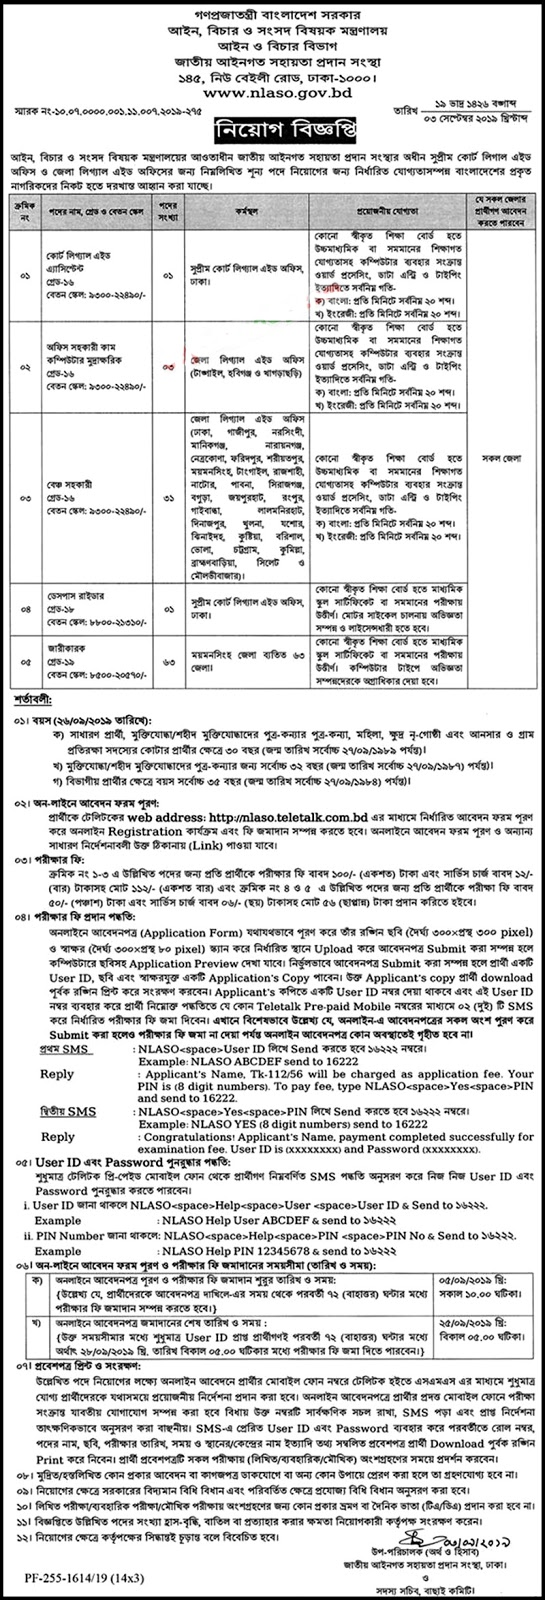 National Legal Aid Services Organization Job Circular 2019